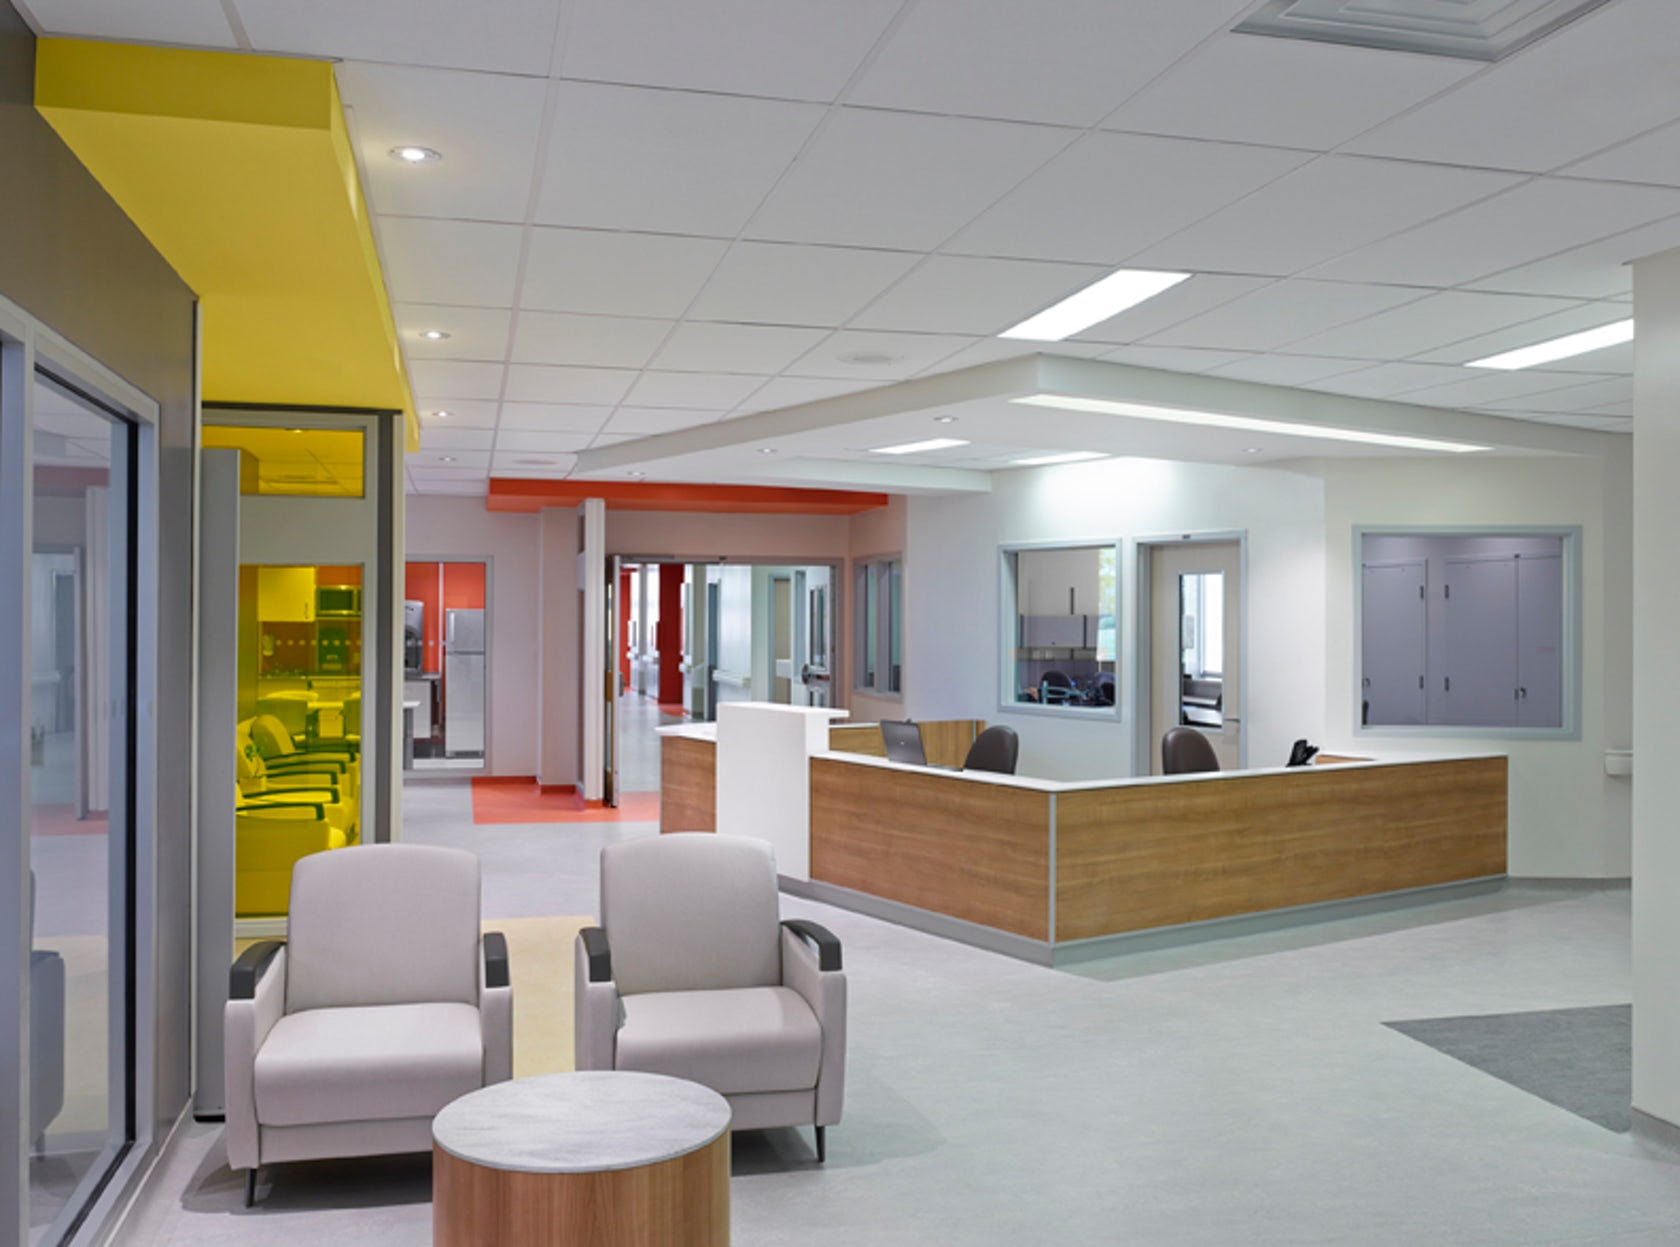 Southwest Centre for Forensic Mental Health Care - Architizer